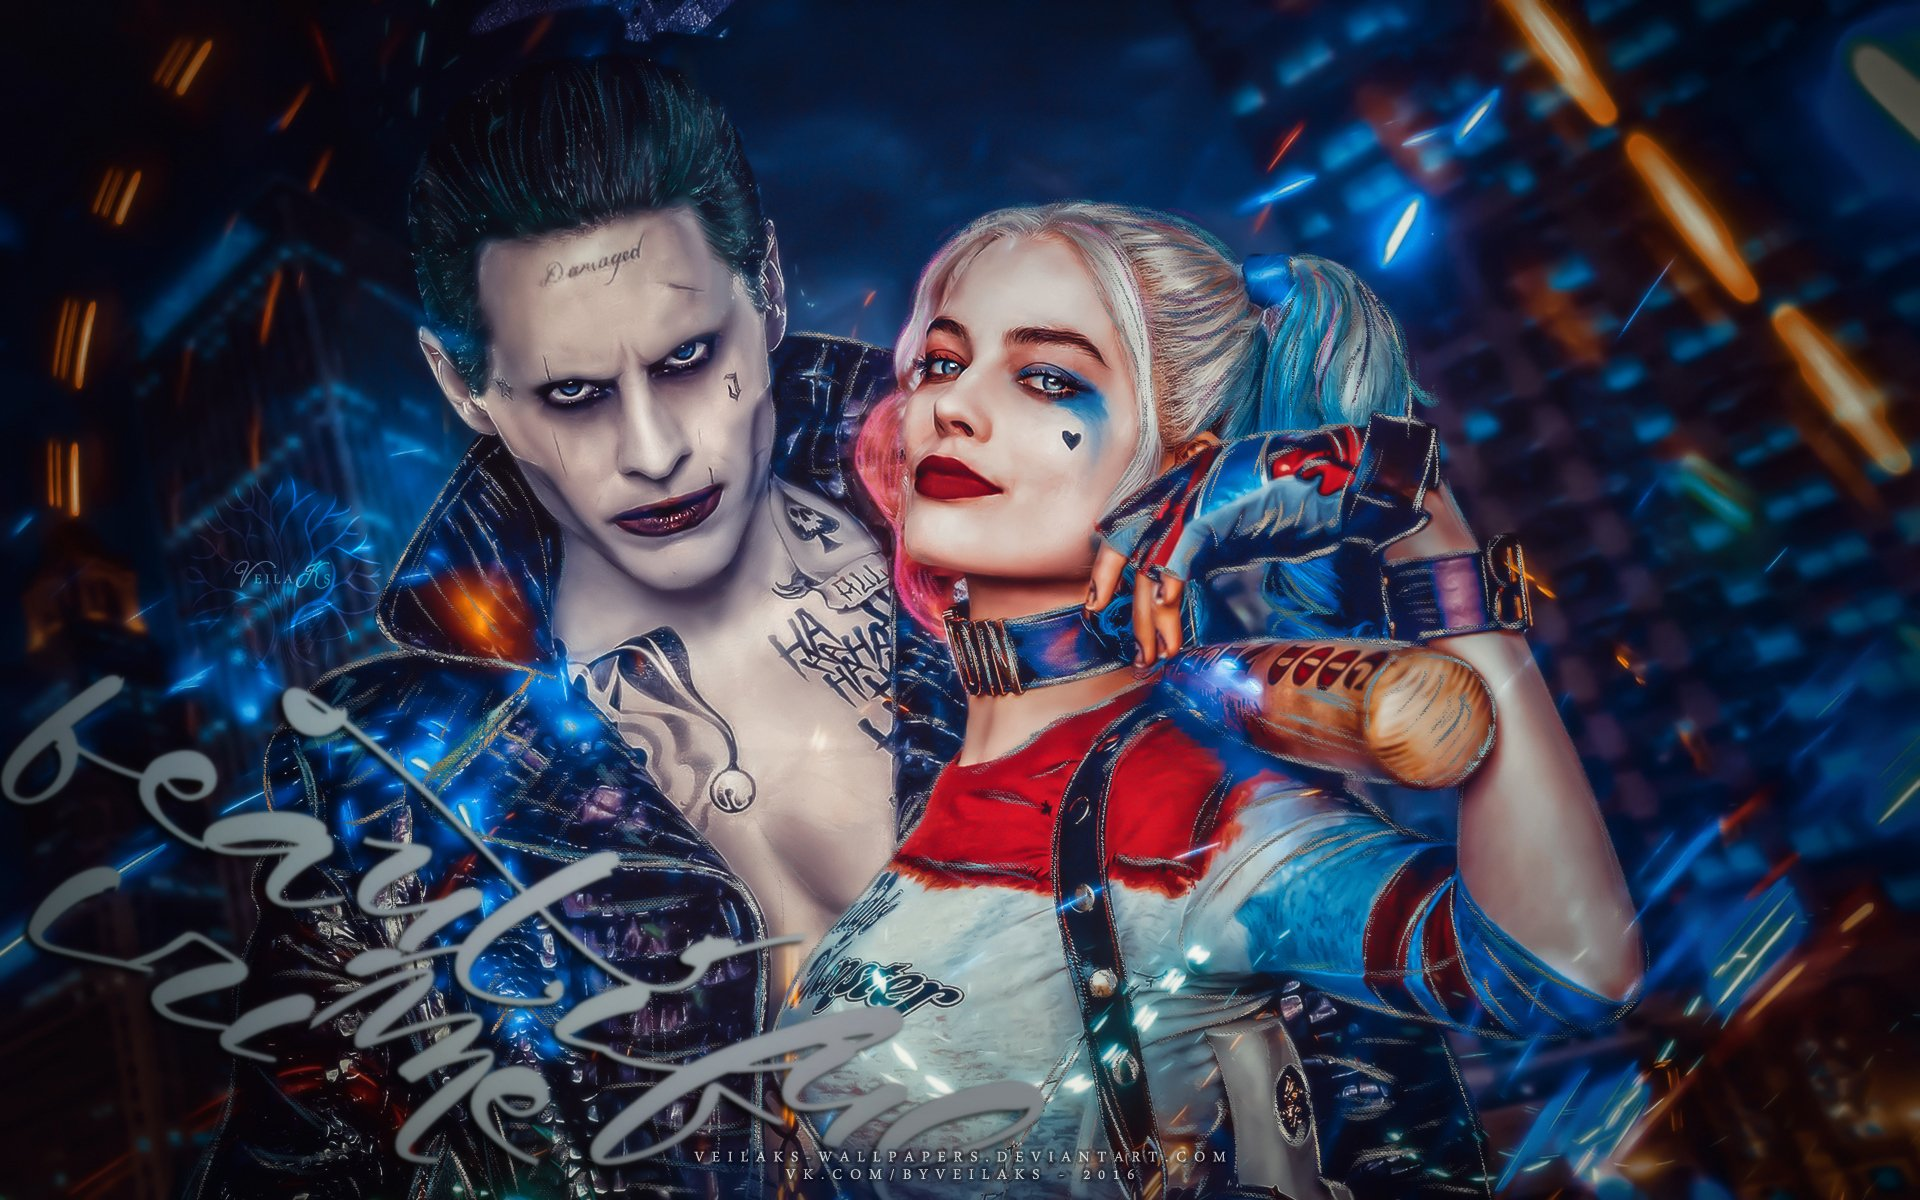 432 Harley Quinn Hd Wallpapers Background Images Wallpaper Abyss